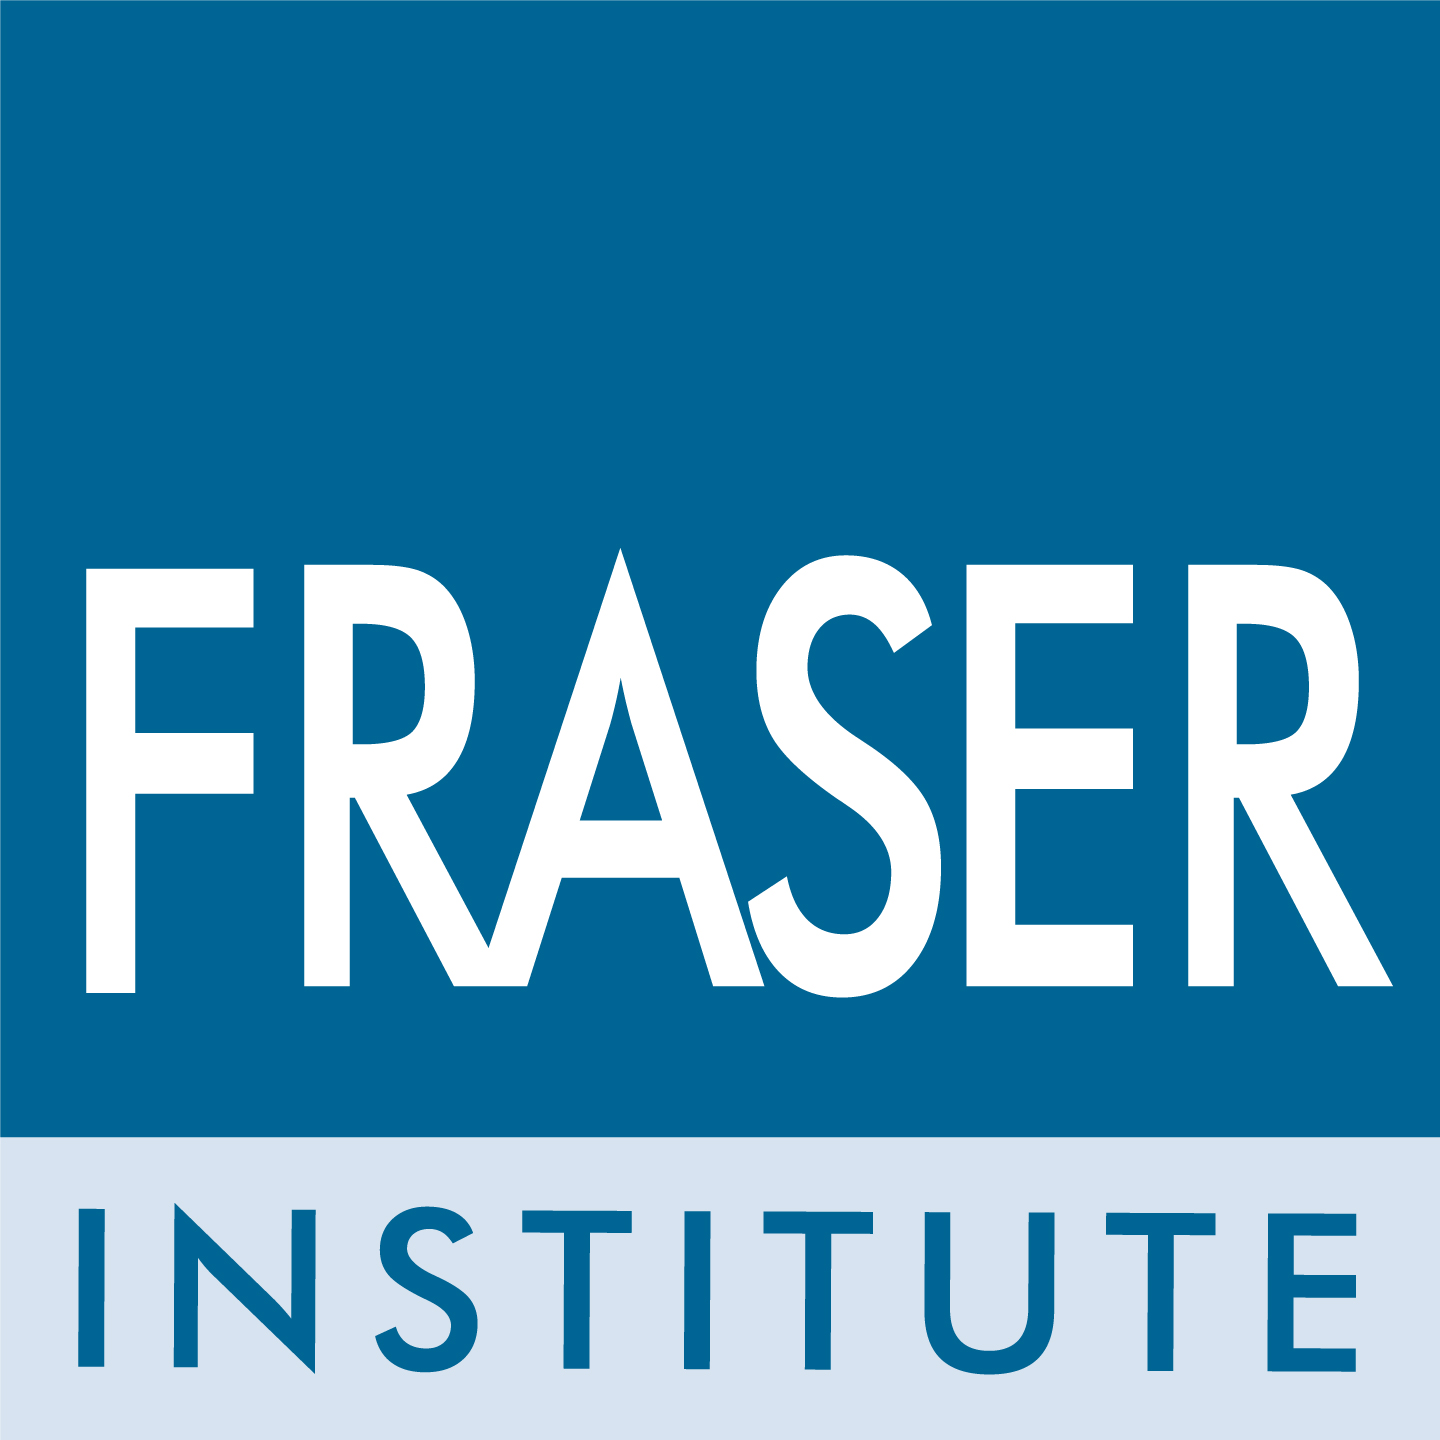 Fraser Institute News Release: Commercial property tax rate in Calgary and Edmonton two to three times higher than residential rate with little rationale